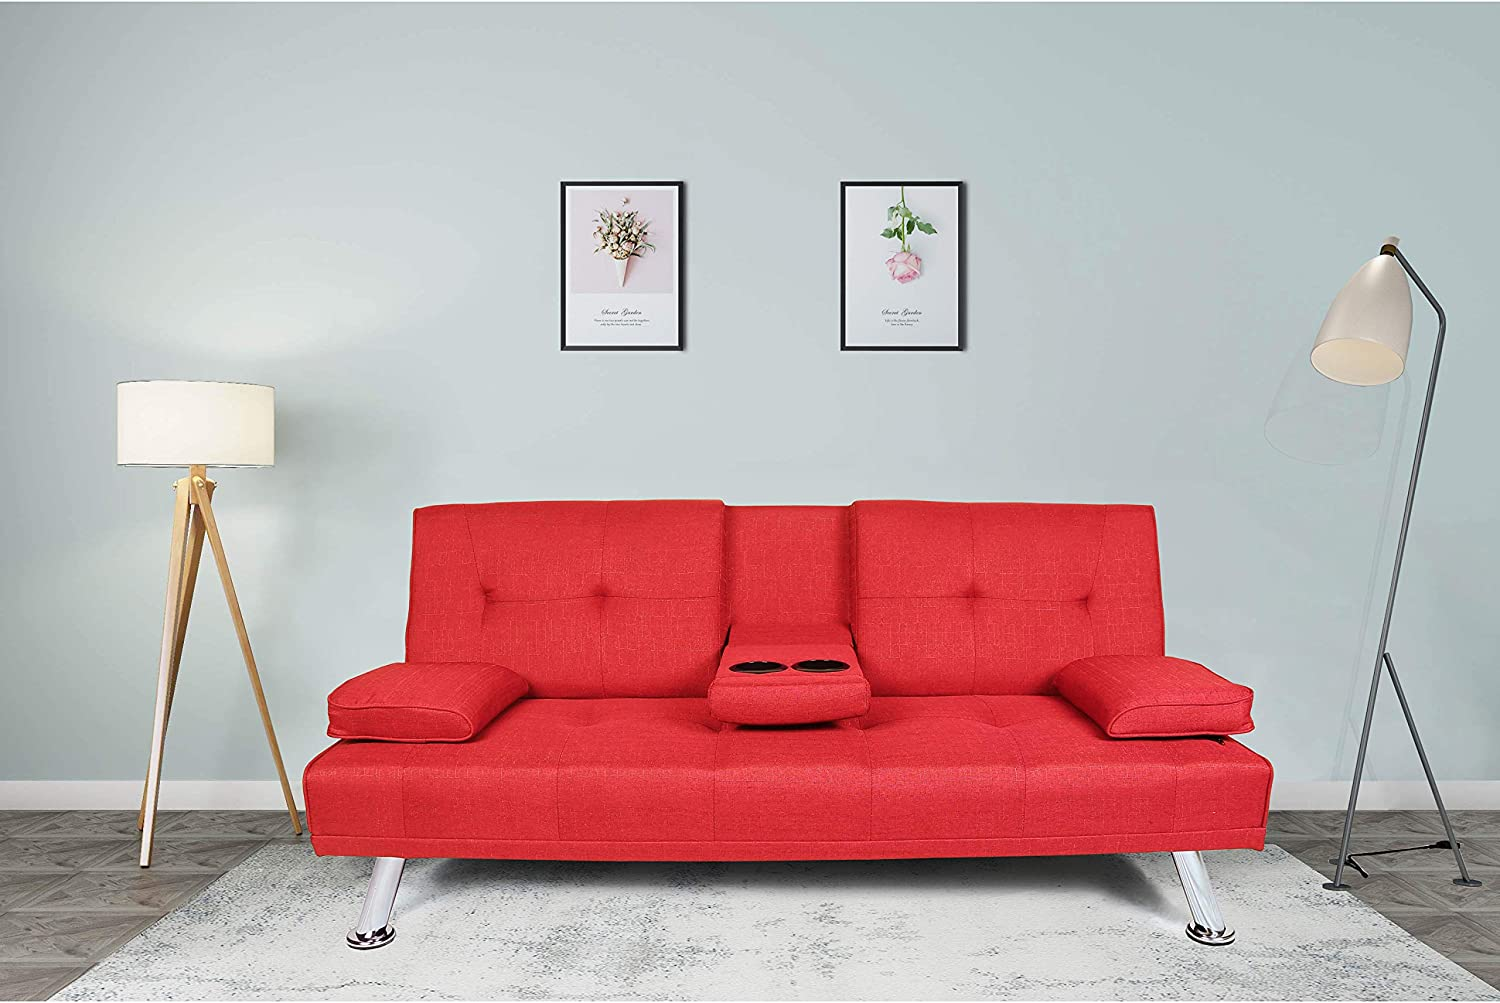 G-house Faux Leather Modern Convertible Folding Futon Sofa Bed Recliner Couch with Metal Legs and 2 Cup Holders Red